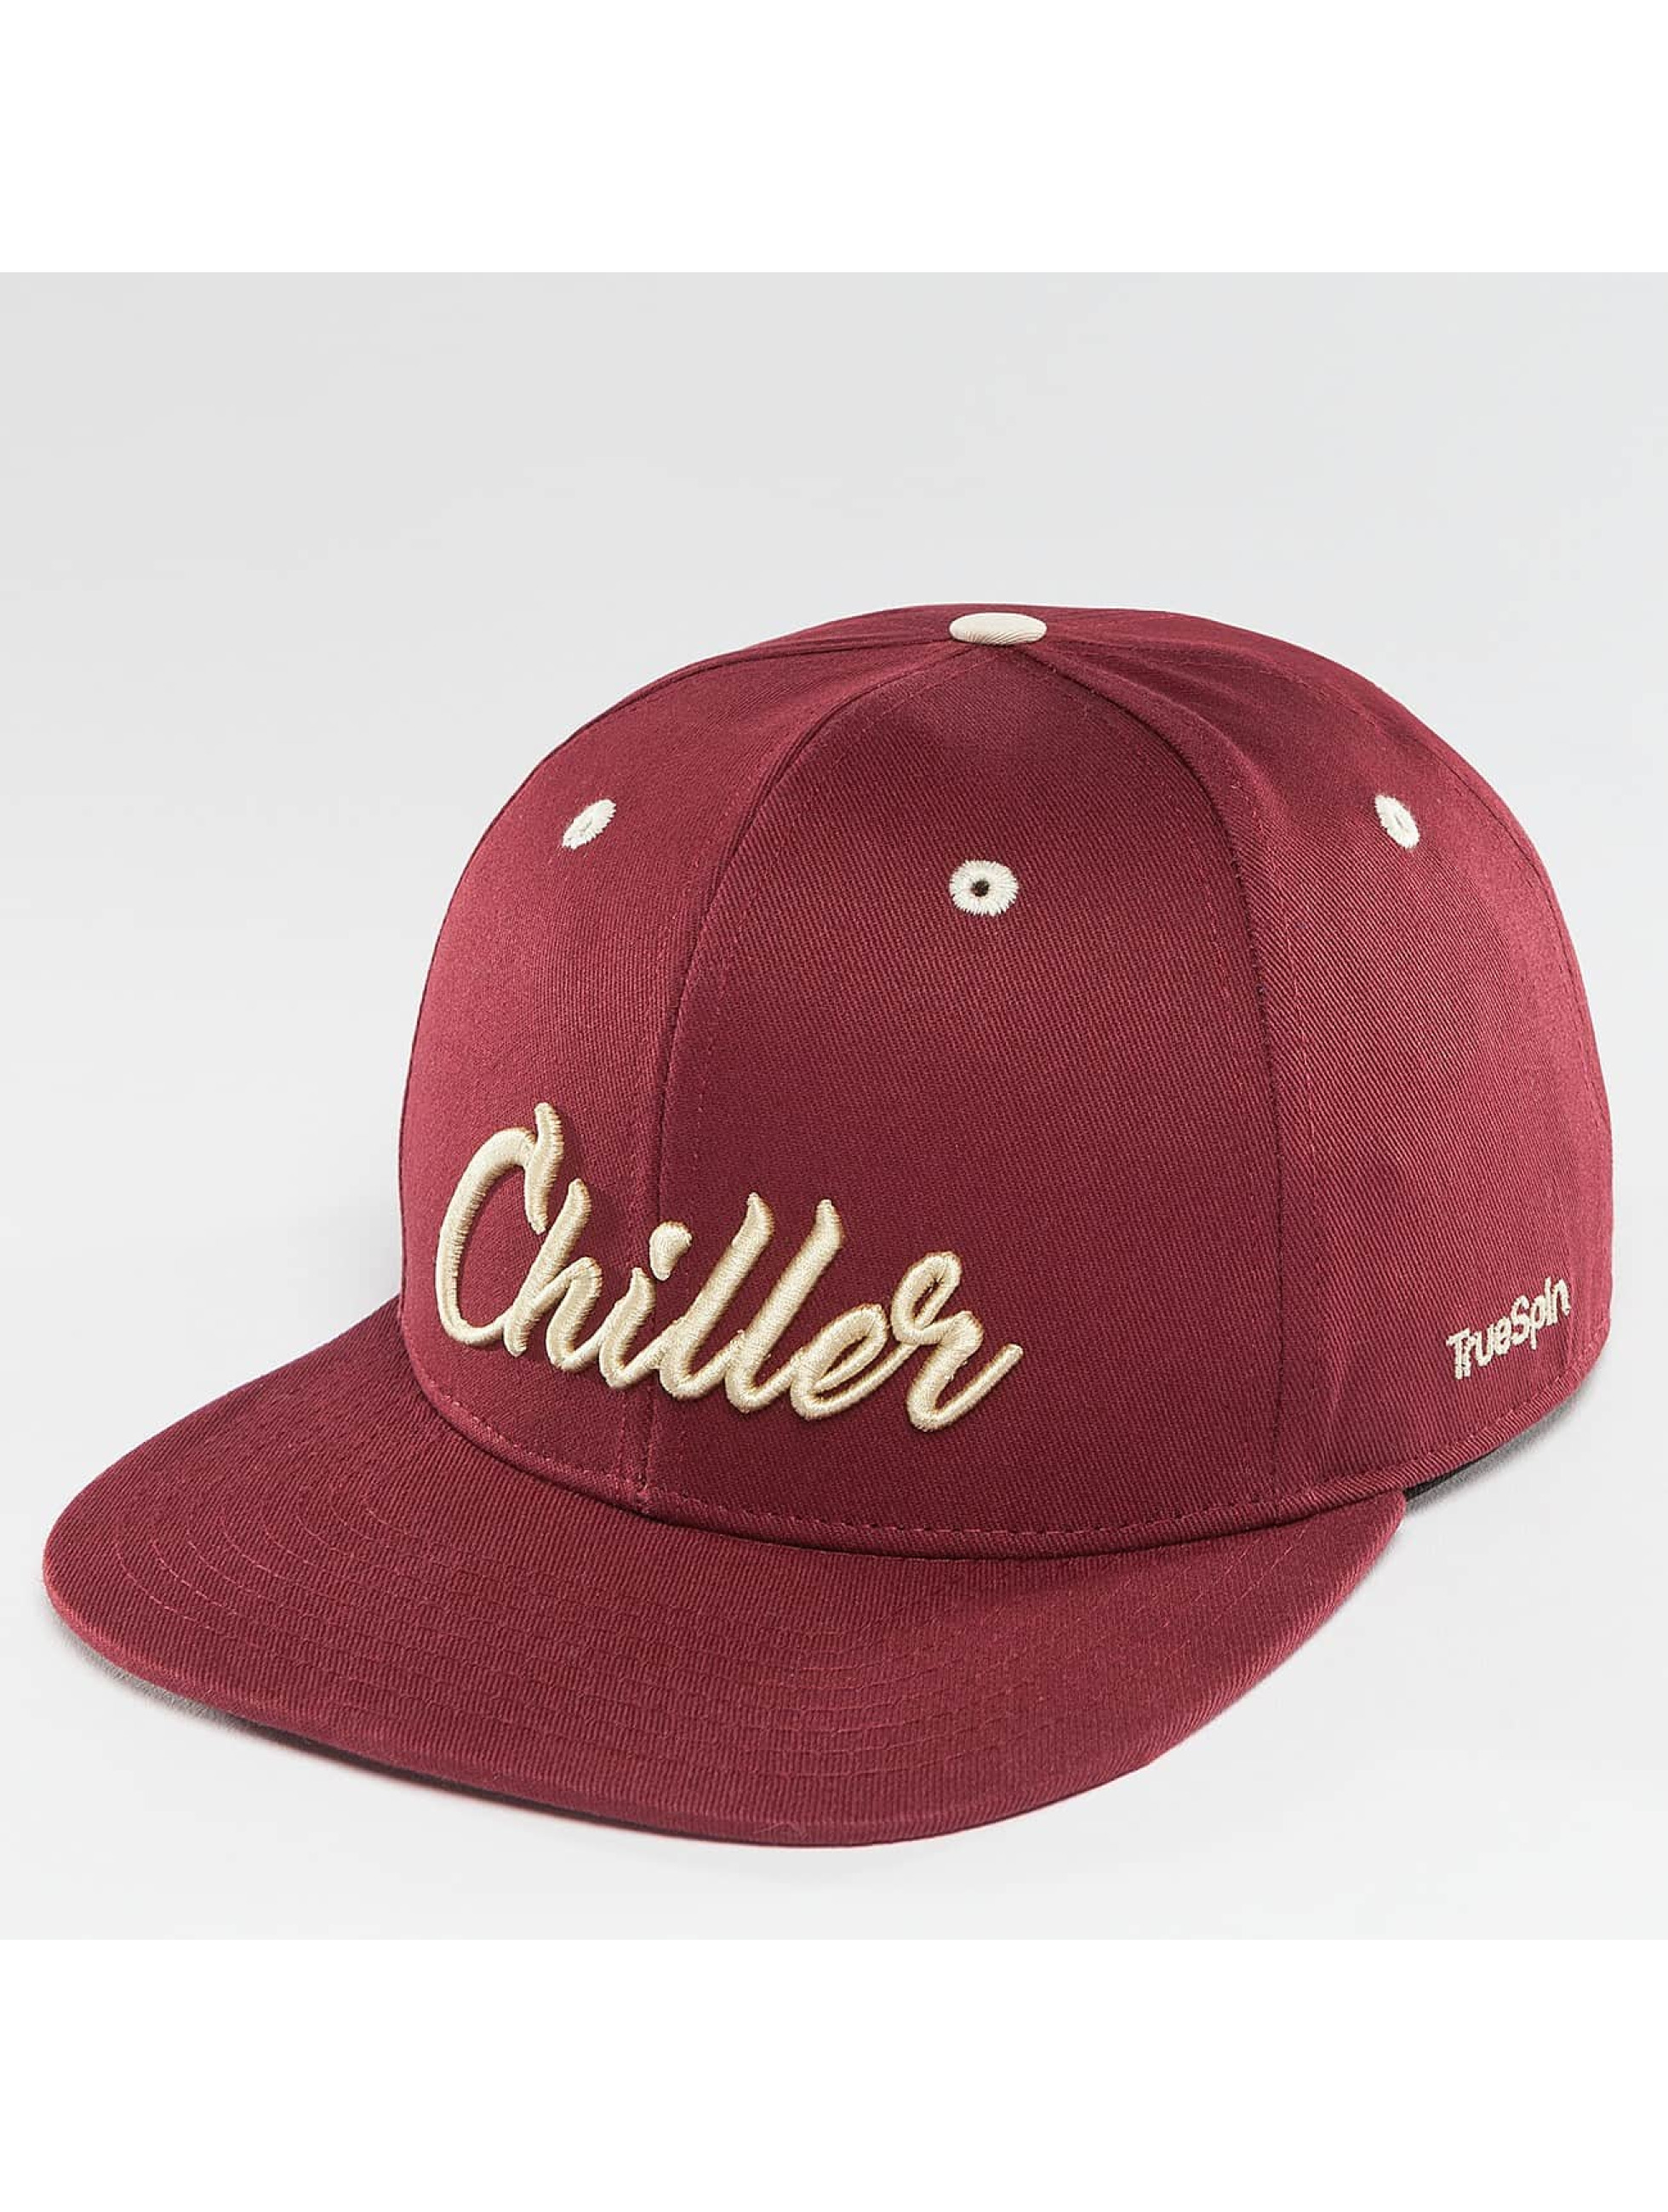 TrueSpin Snapback Caps Chiller red